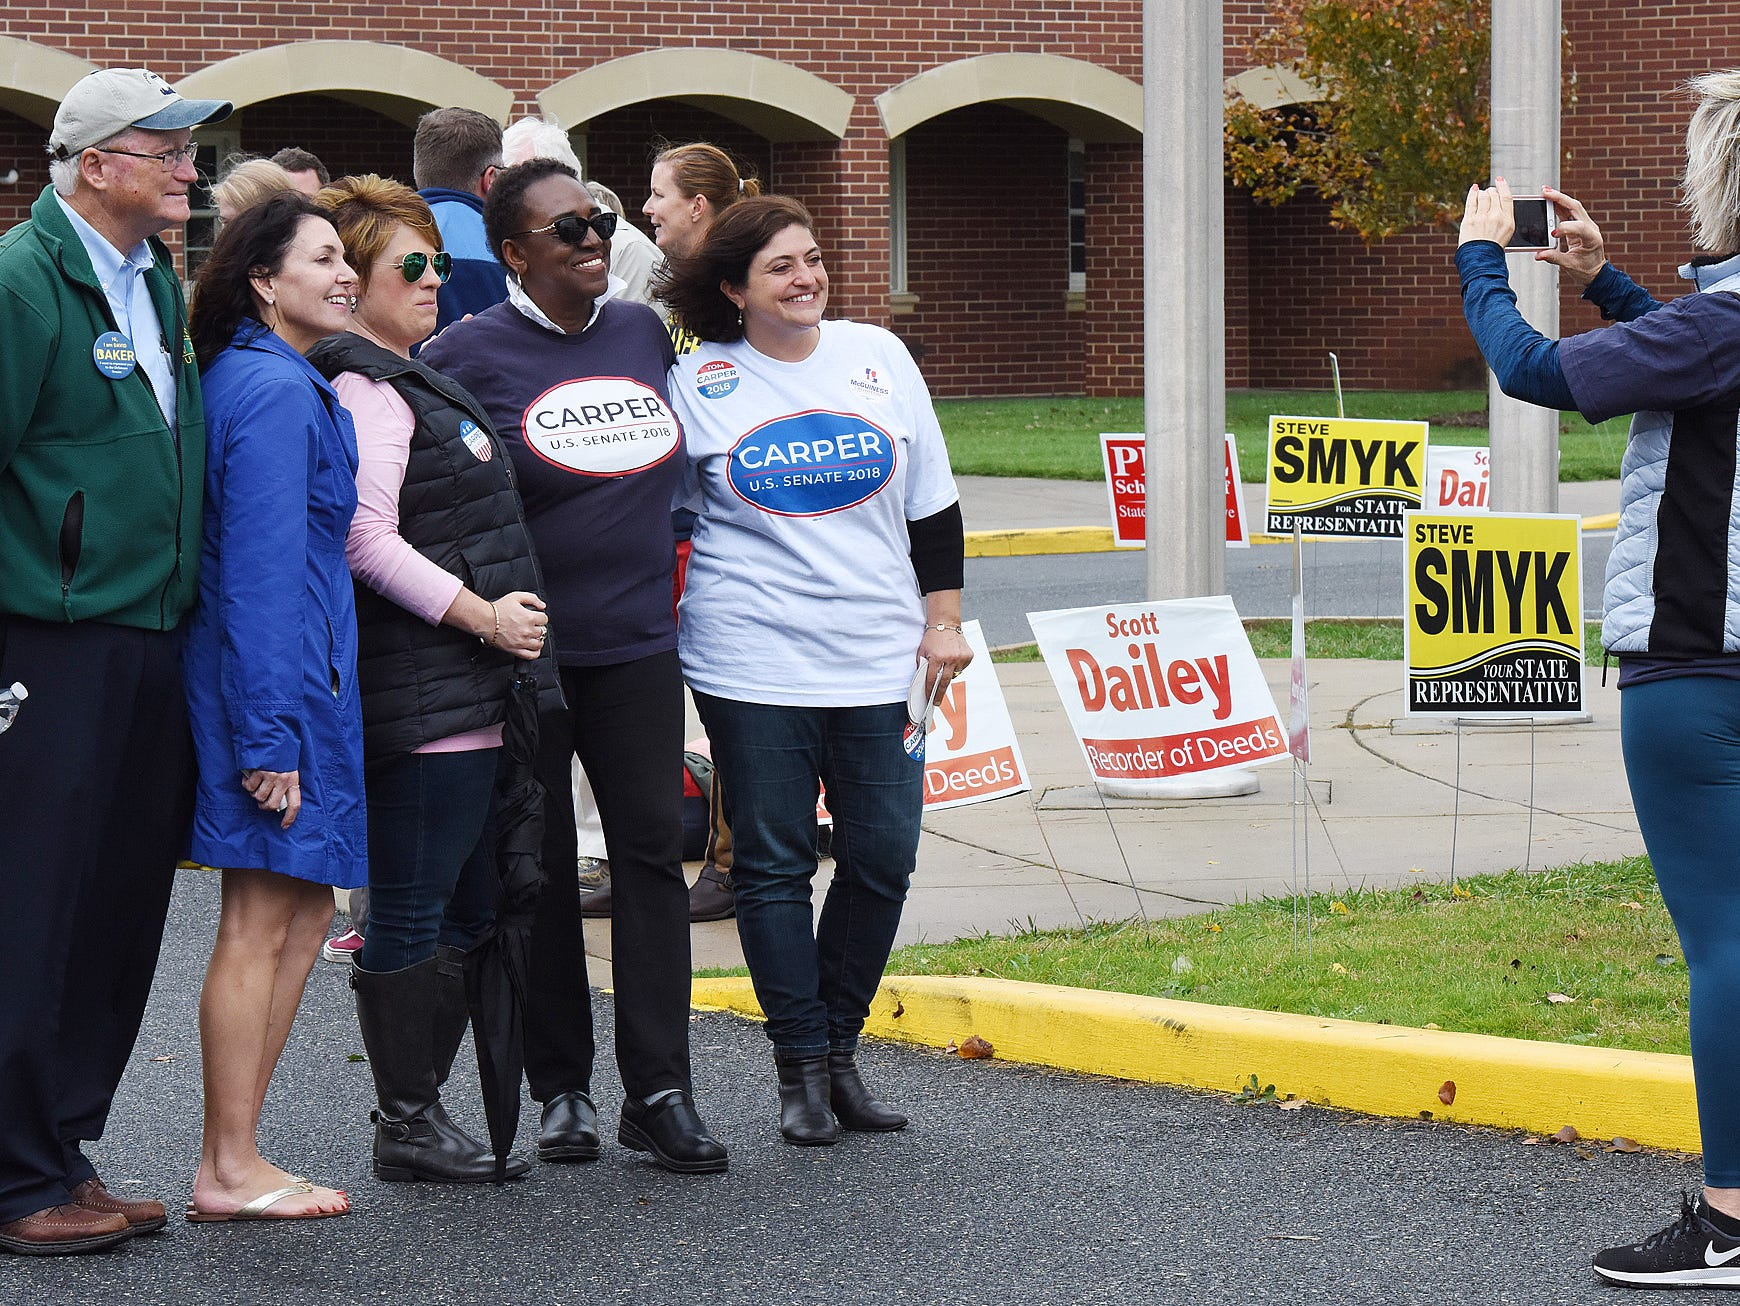 Voters have a photo taken with candidates at Cape Henlopen High School near Lewes as turnout in eastern Sussex County has been steady at polling places as candidates still seek supporters for their support.